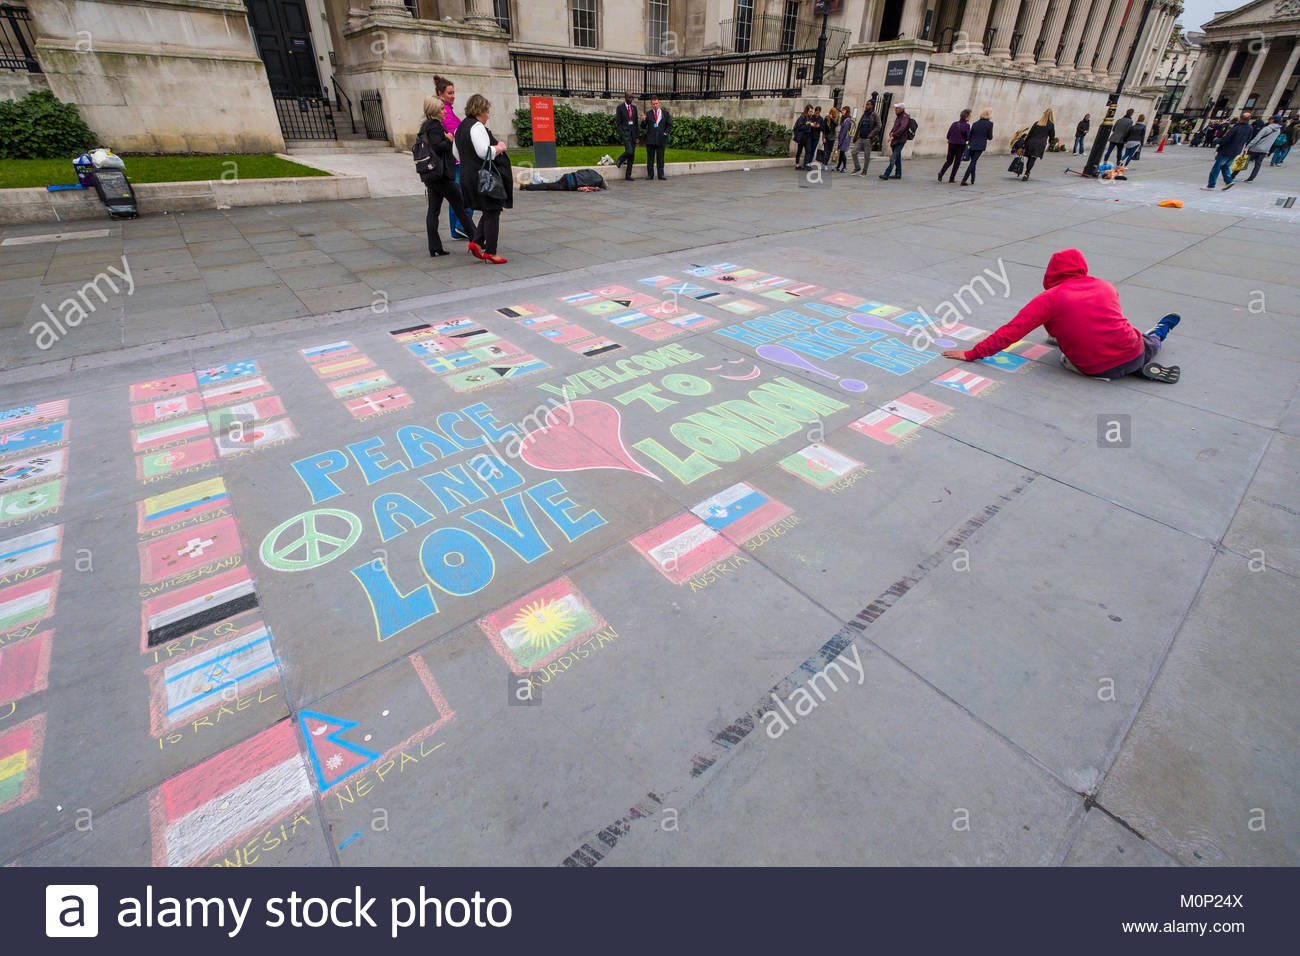 Man using colored chalk to draw flags of various countries on ground of Trafalgar Square, City of Westminster, London, - Stock Image